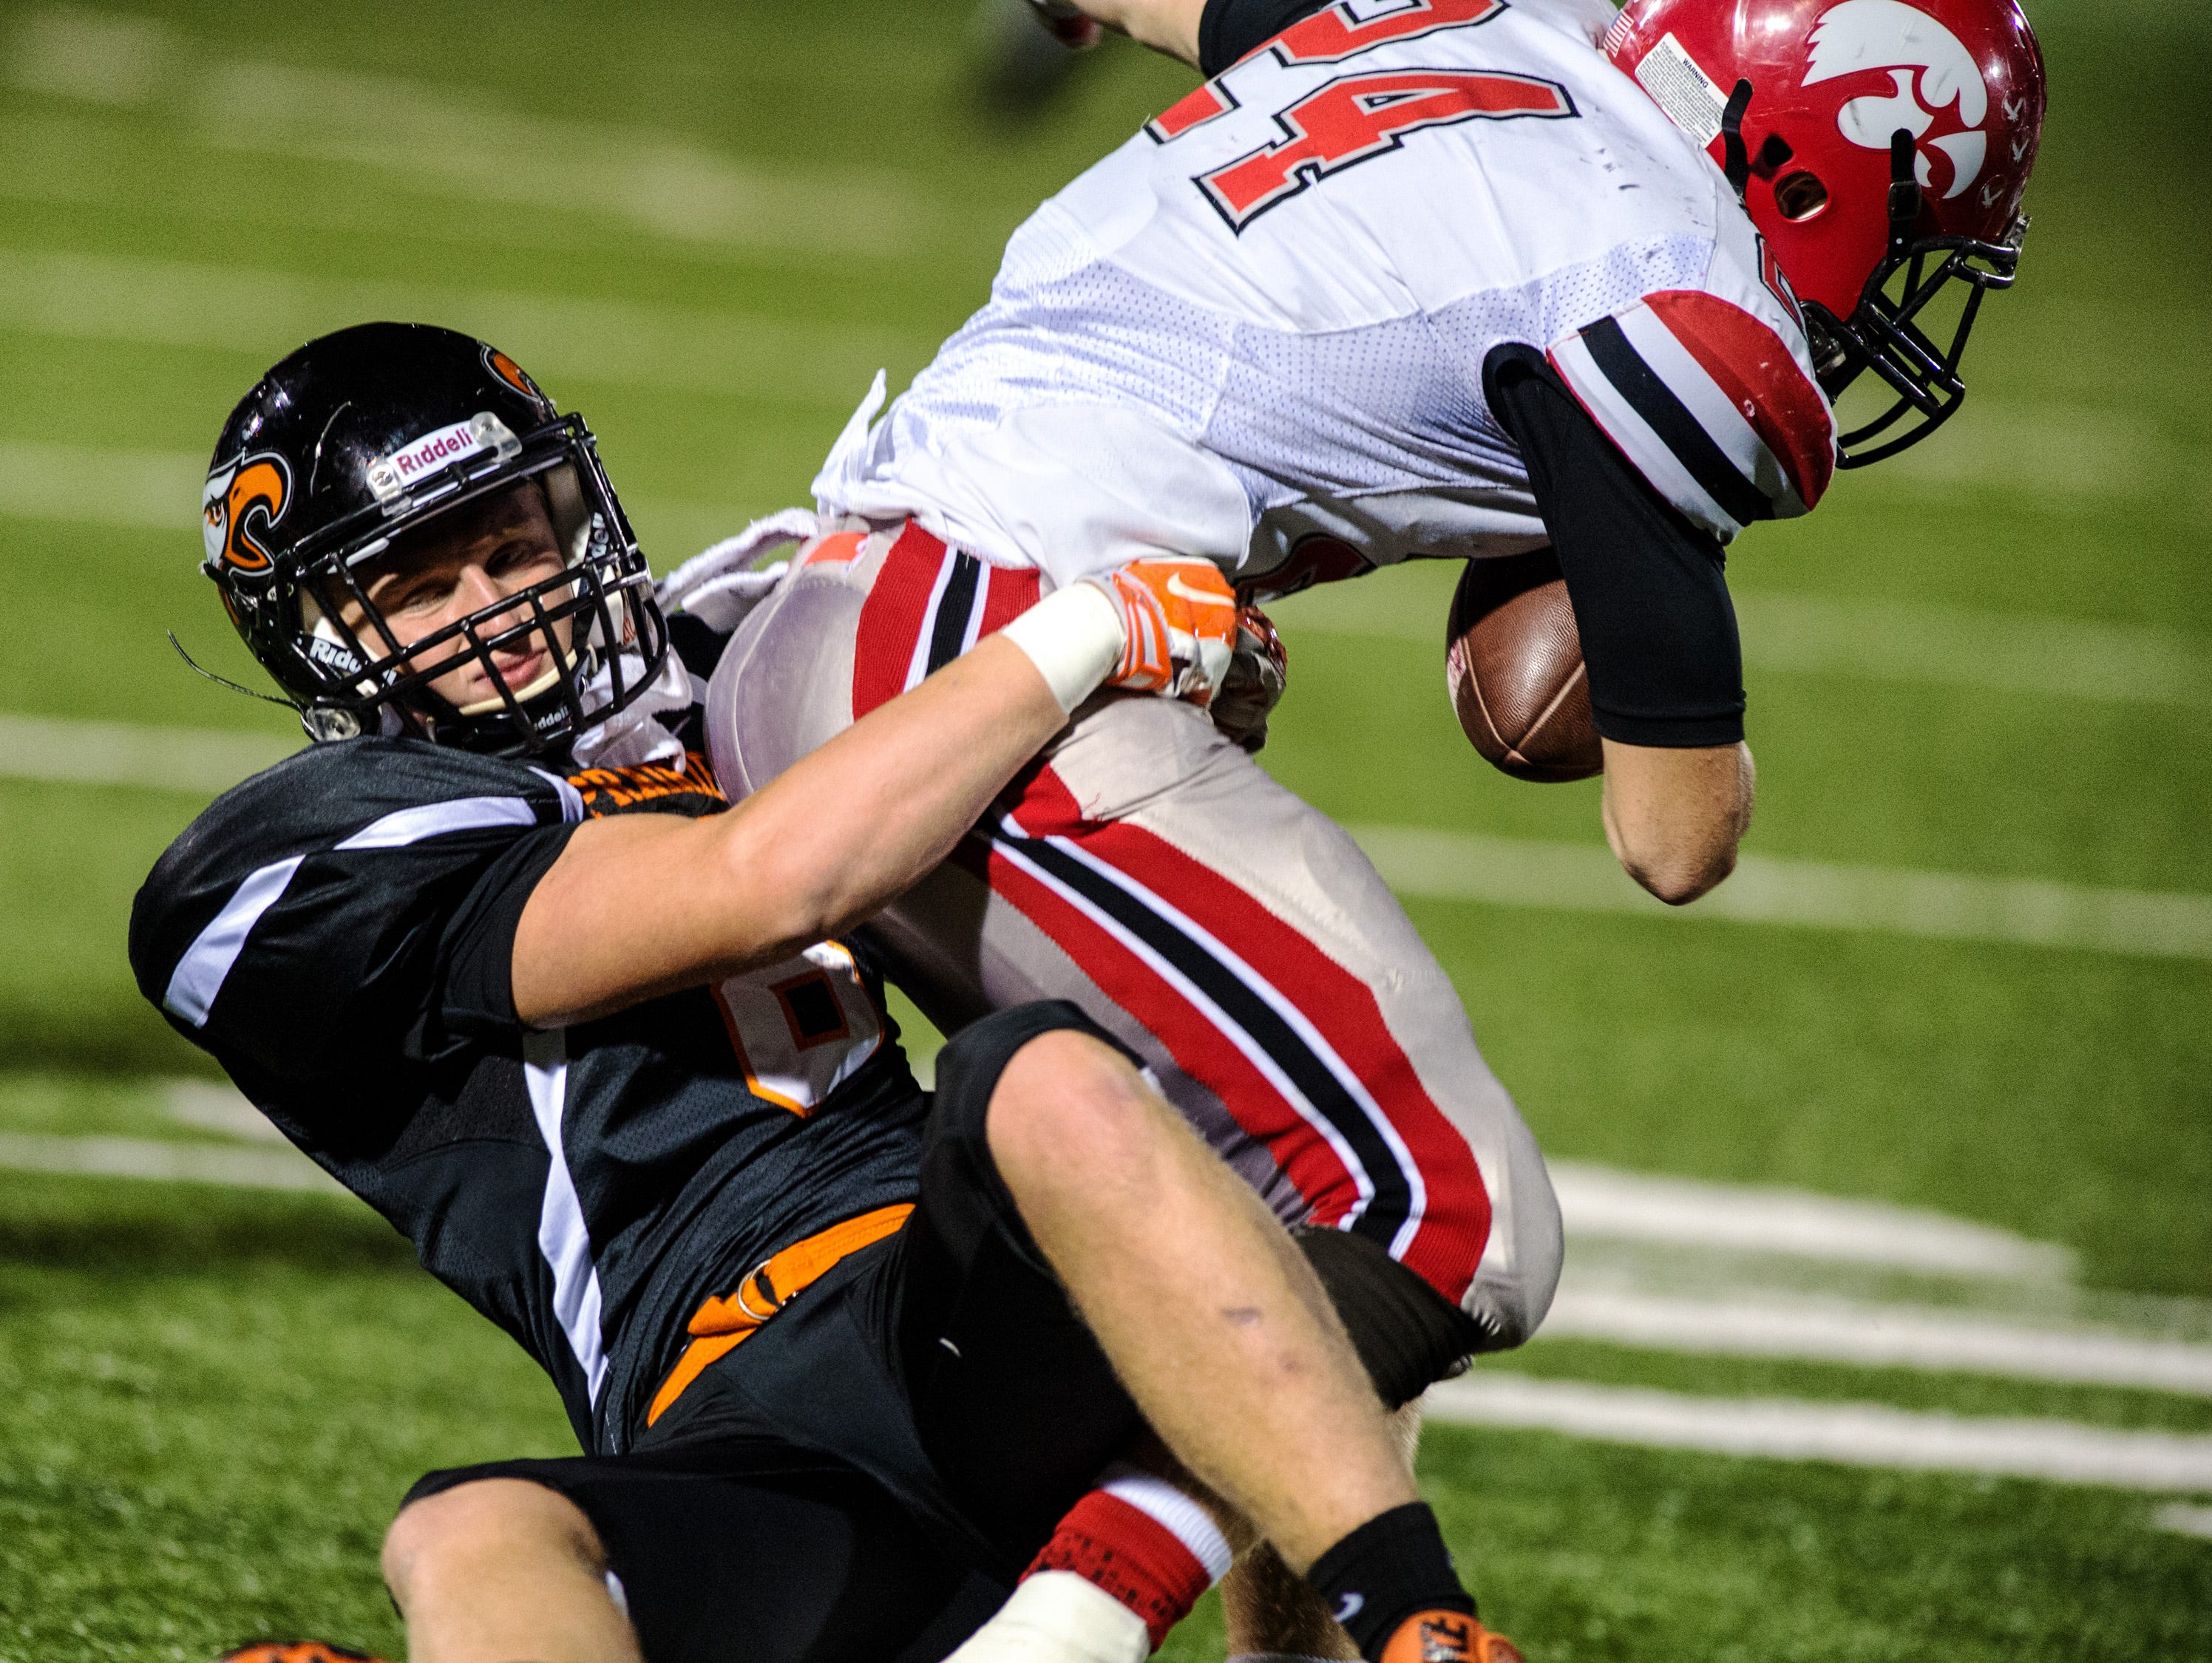 Iowa City High's Bryce Frantz (24) gets tackled by Cedar Rapids Prairie's Zachary Ganske (24) during the first half of play on Friday, October 2, 2015 in Cedar Rapids. (Justin Torner/Freelance for the Press-Citizen)